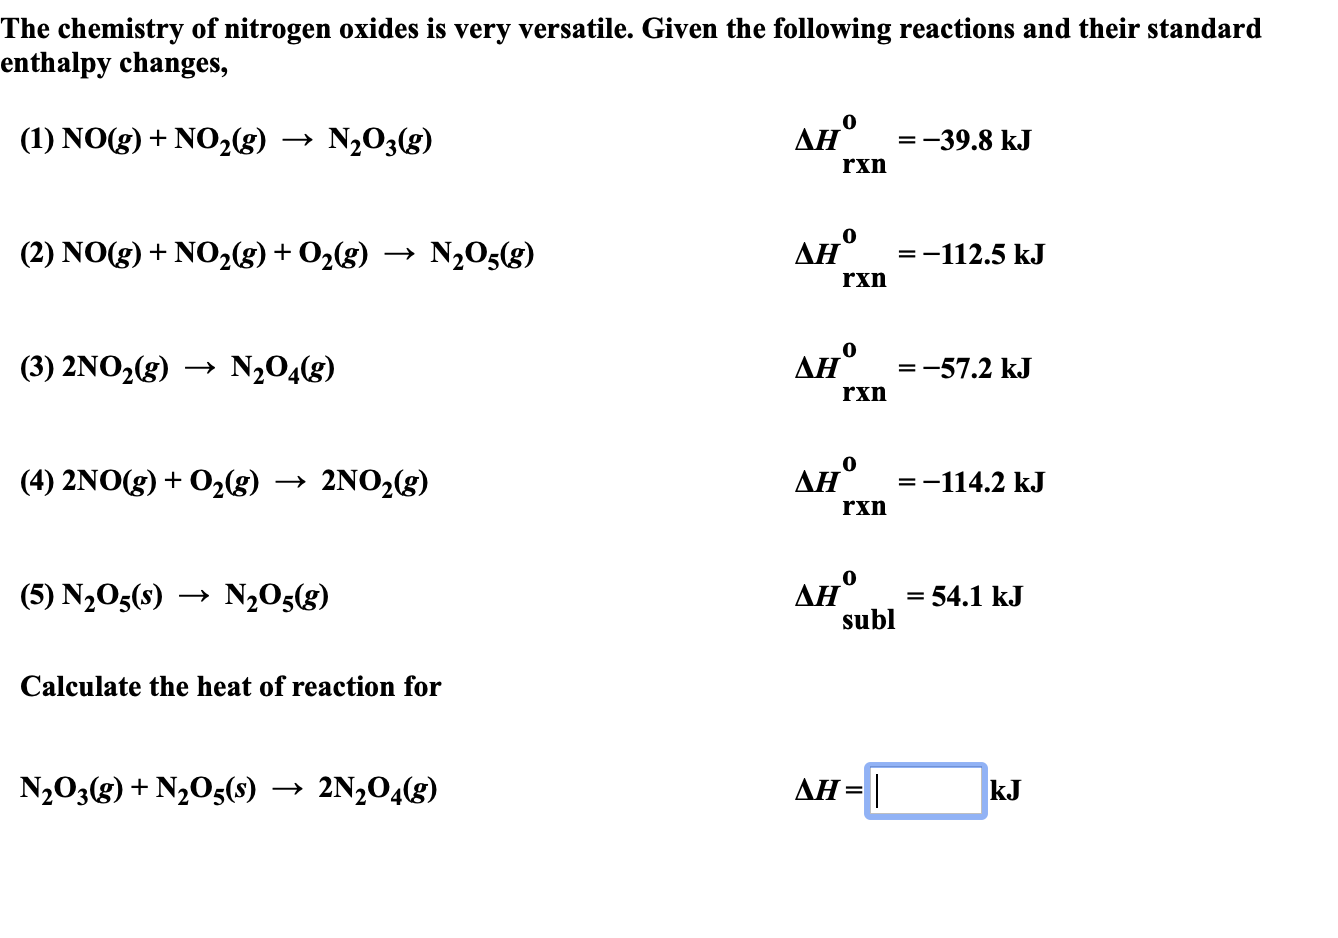 "The chemistry of nitrogen oxides is very versatile. Given the following reactions and their standard enthalpy changes, Ан° (1) NOg)NO2(g) N203(g) =-39.8 kJ + rxn Ан° (2) NO(g) NO2(g) + O2(g) N205(g) =-112.5 kJ rxn Ан° N204(8) (3) 2NO2(g) -57.2 kJ rxn Дн"" %3-114.2 kJ (4) 2NO(g) 02g) 2NO2(g) = rxn Ан° subl (5) N205(s) N205(g) = 54.1 kJ Calculate the heat of reaction for AH N203(g)N205(s) 2N204(g) kJ"